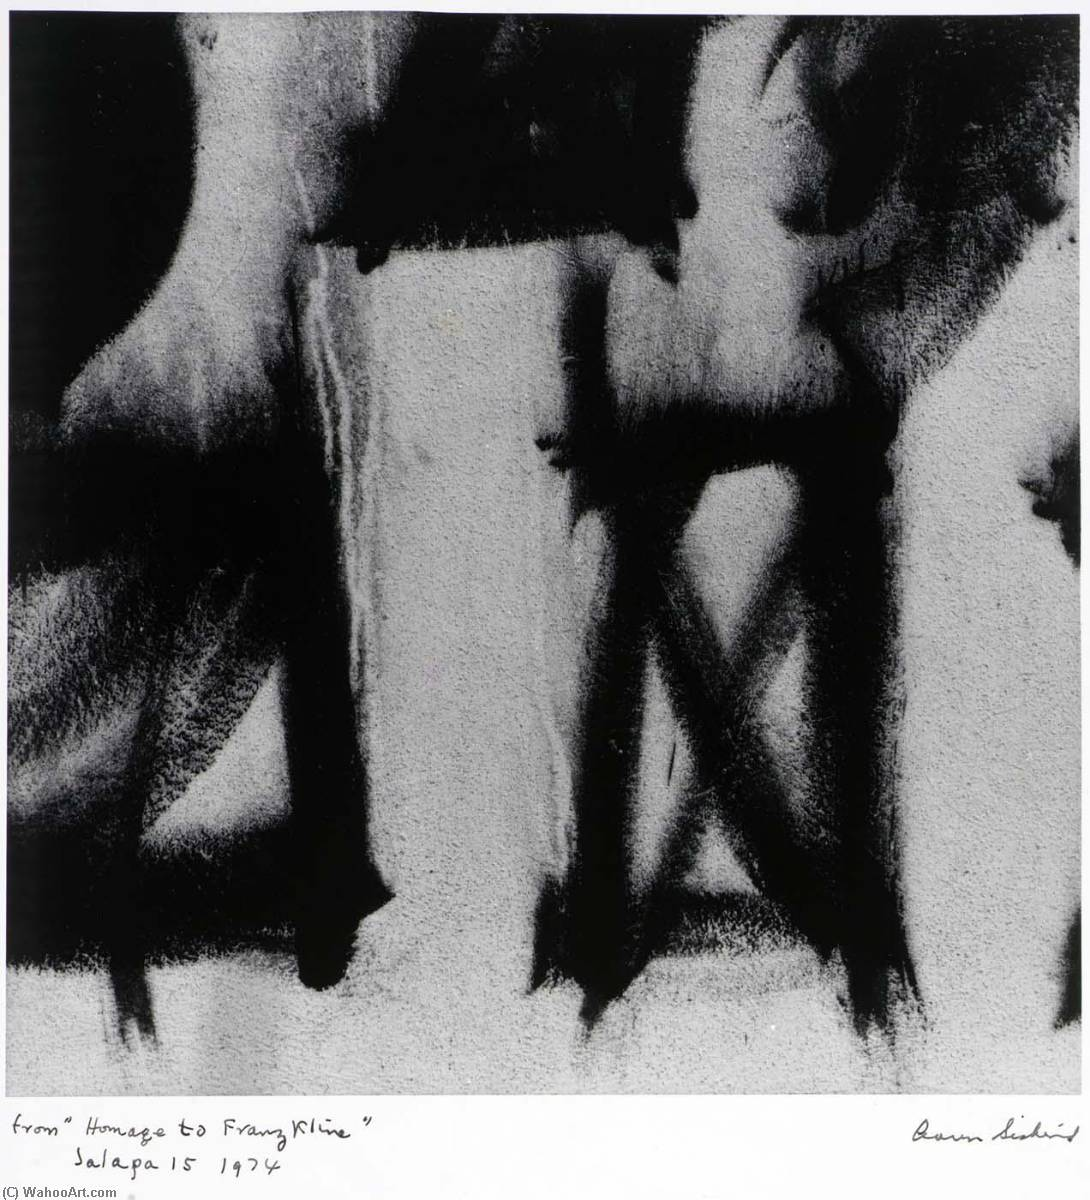 Jalapa 15 1974, from the series Homage to Franz Kline, 1974 by Aaron Siskind (1903-1991, United States) | Oil Painting | WahooArt.com